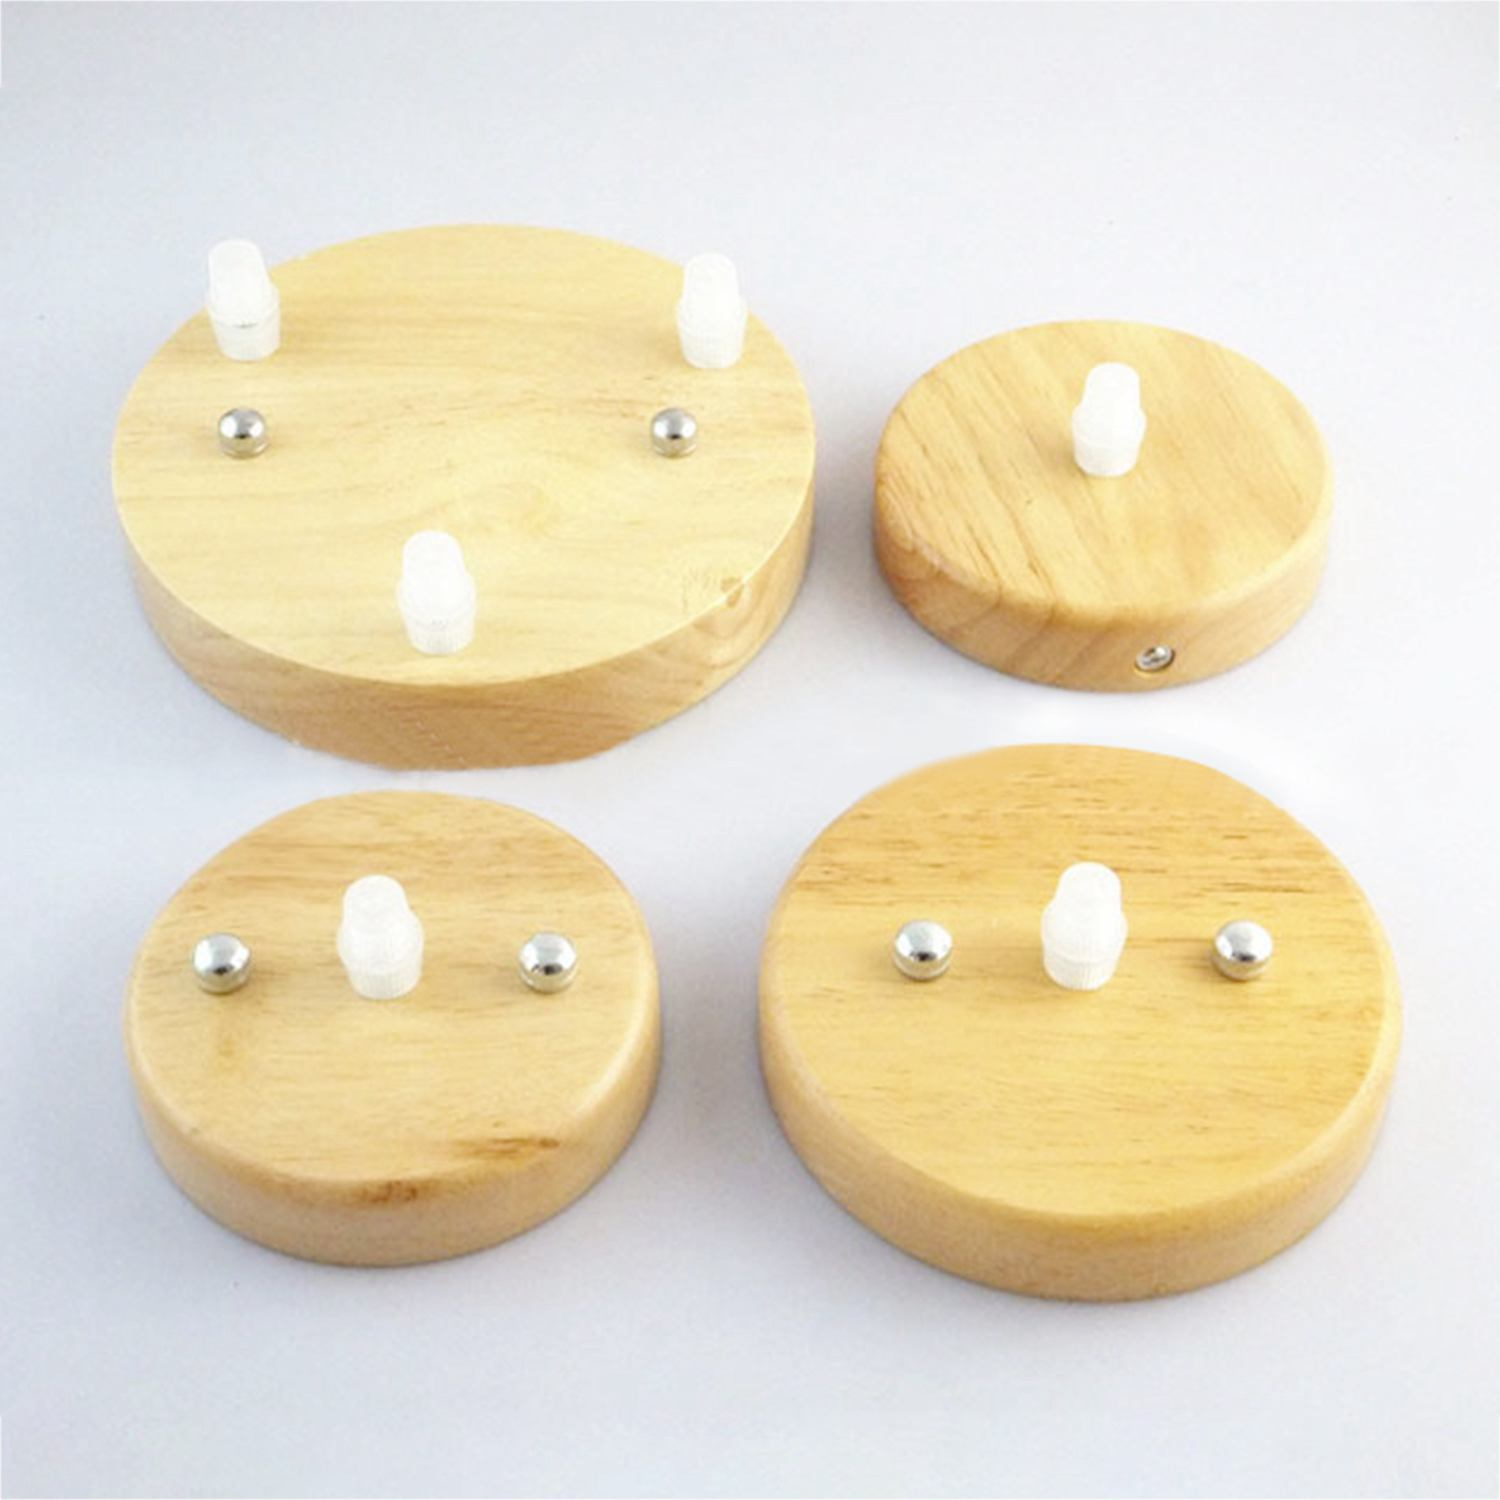 lamp base concise style modern Ceiling Plate Wooden ceiling holder E27 Lamp fitting chandelier Base DIY lighting accessories